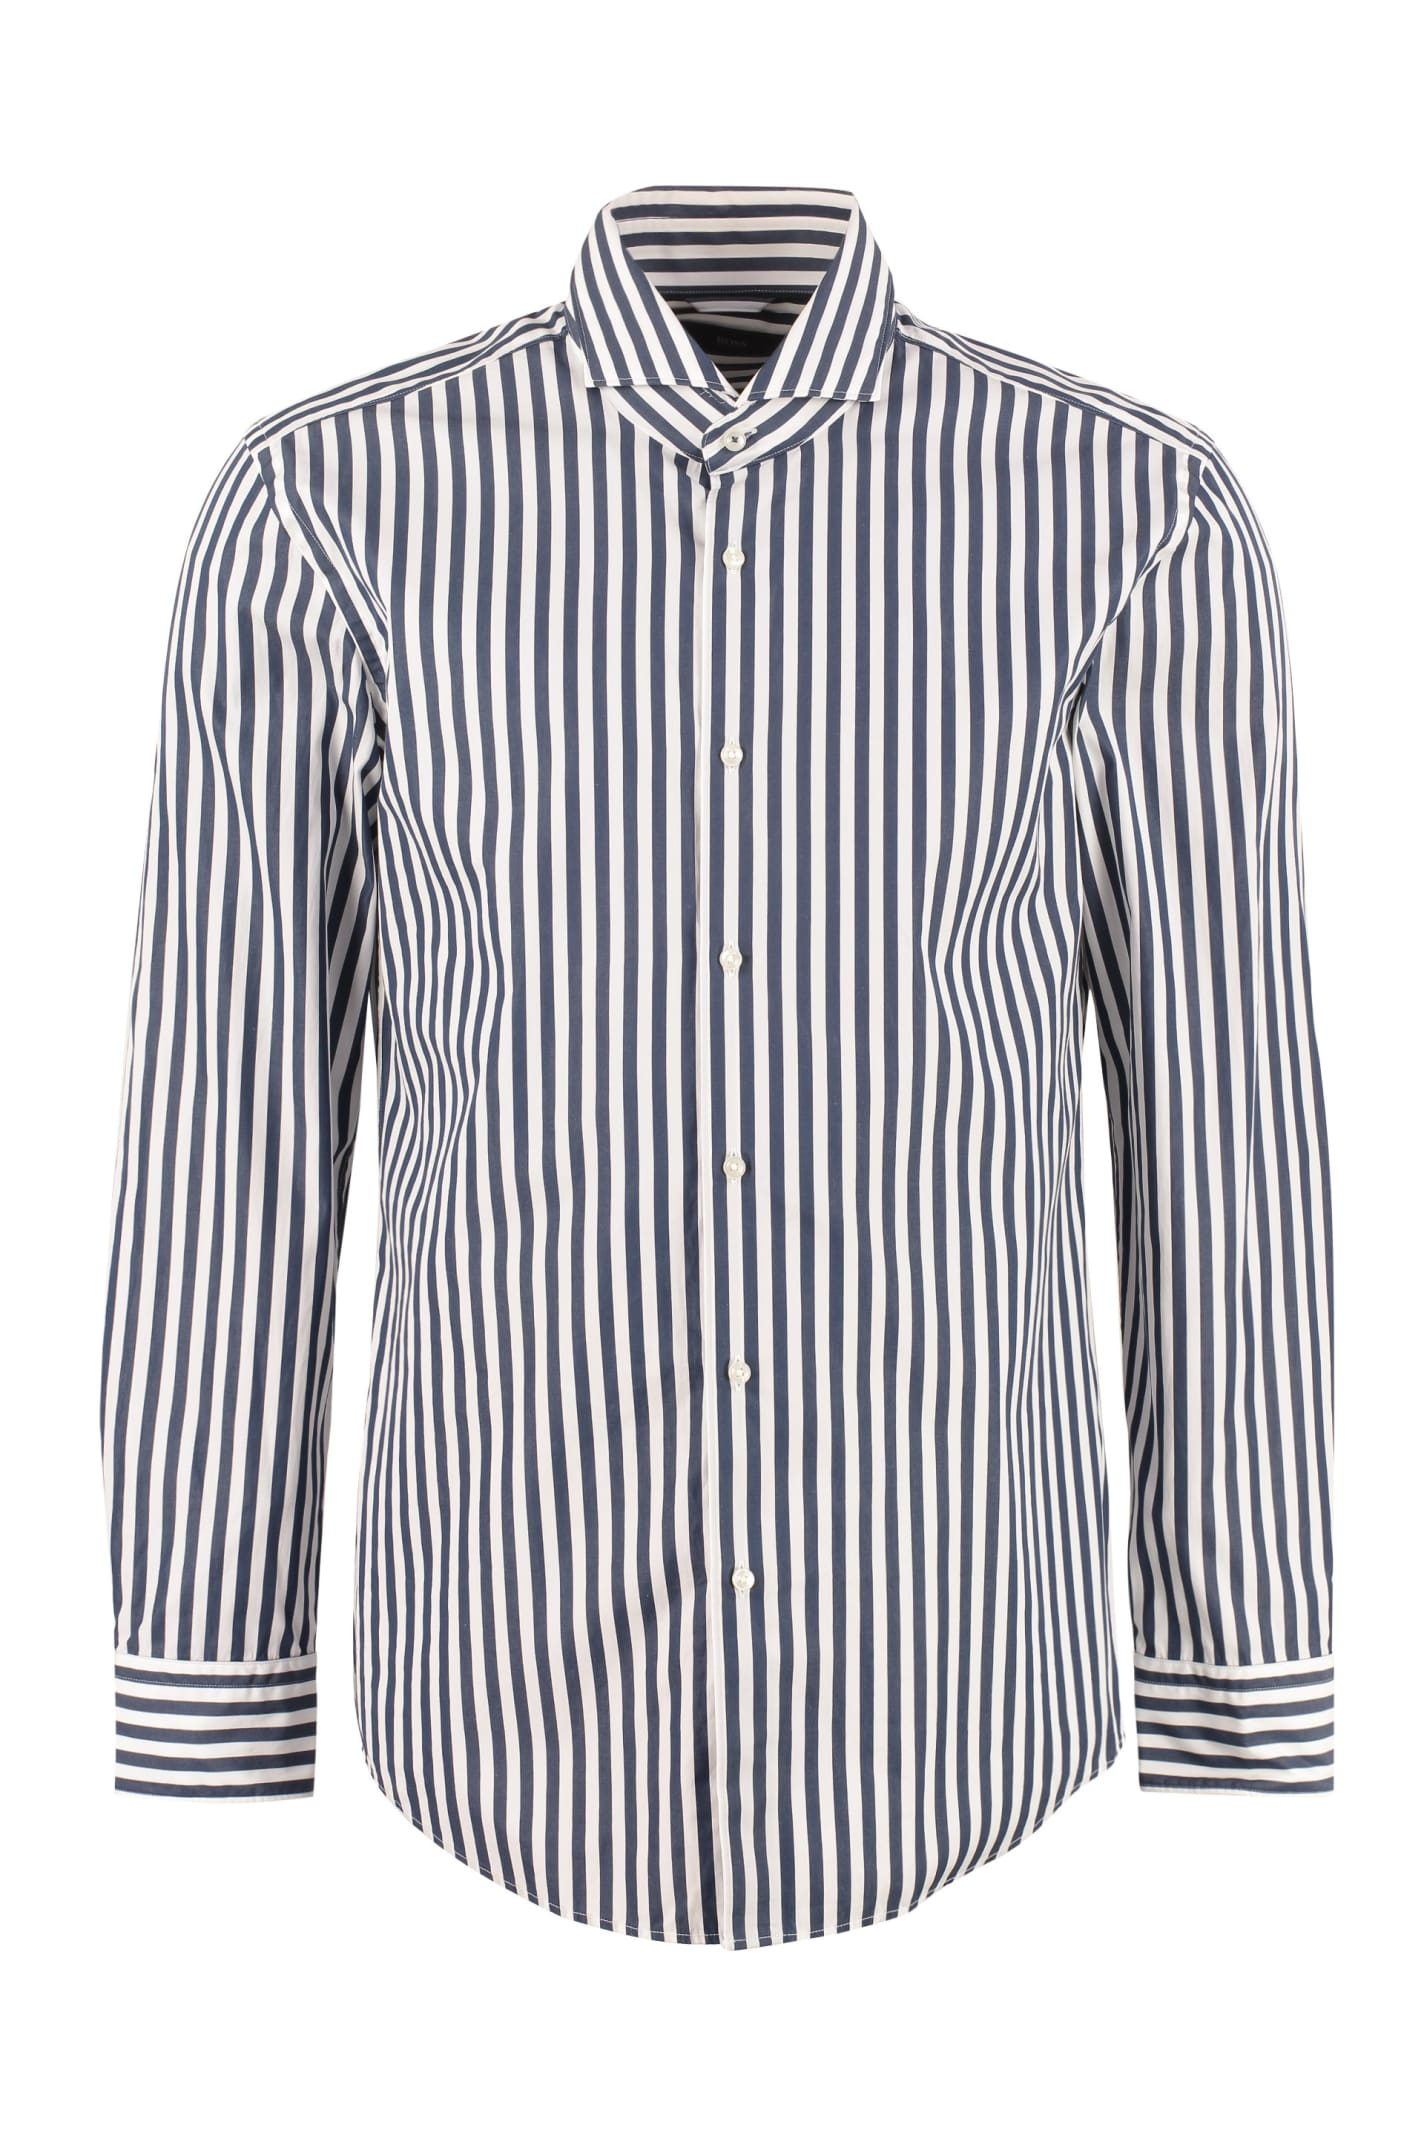 Hugo Boss Spread Collar Cotton Shirt